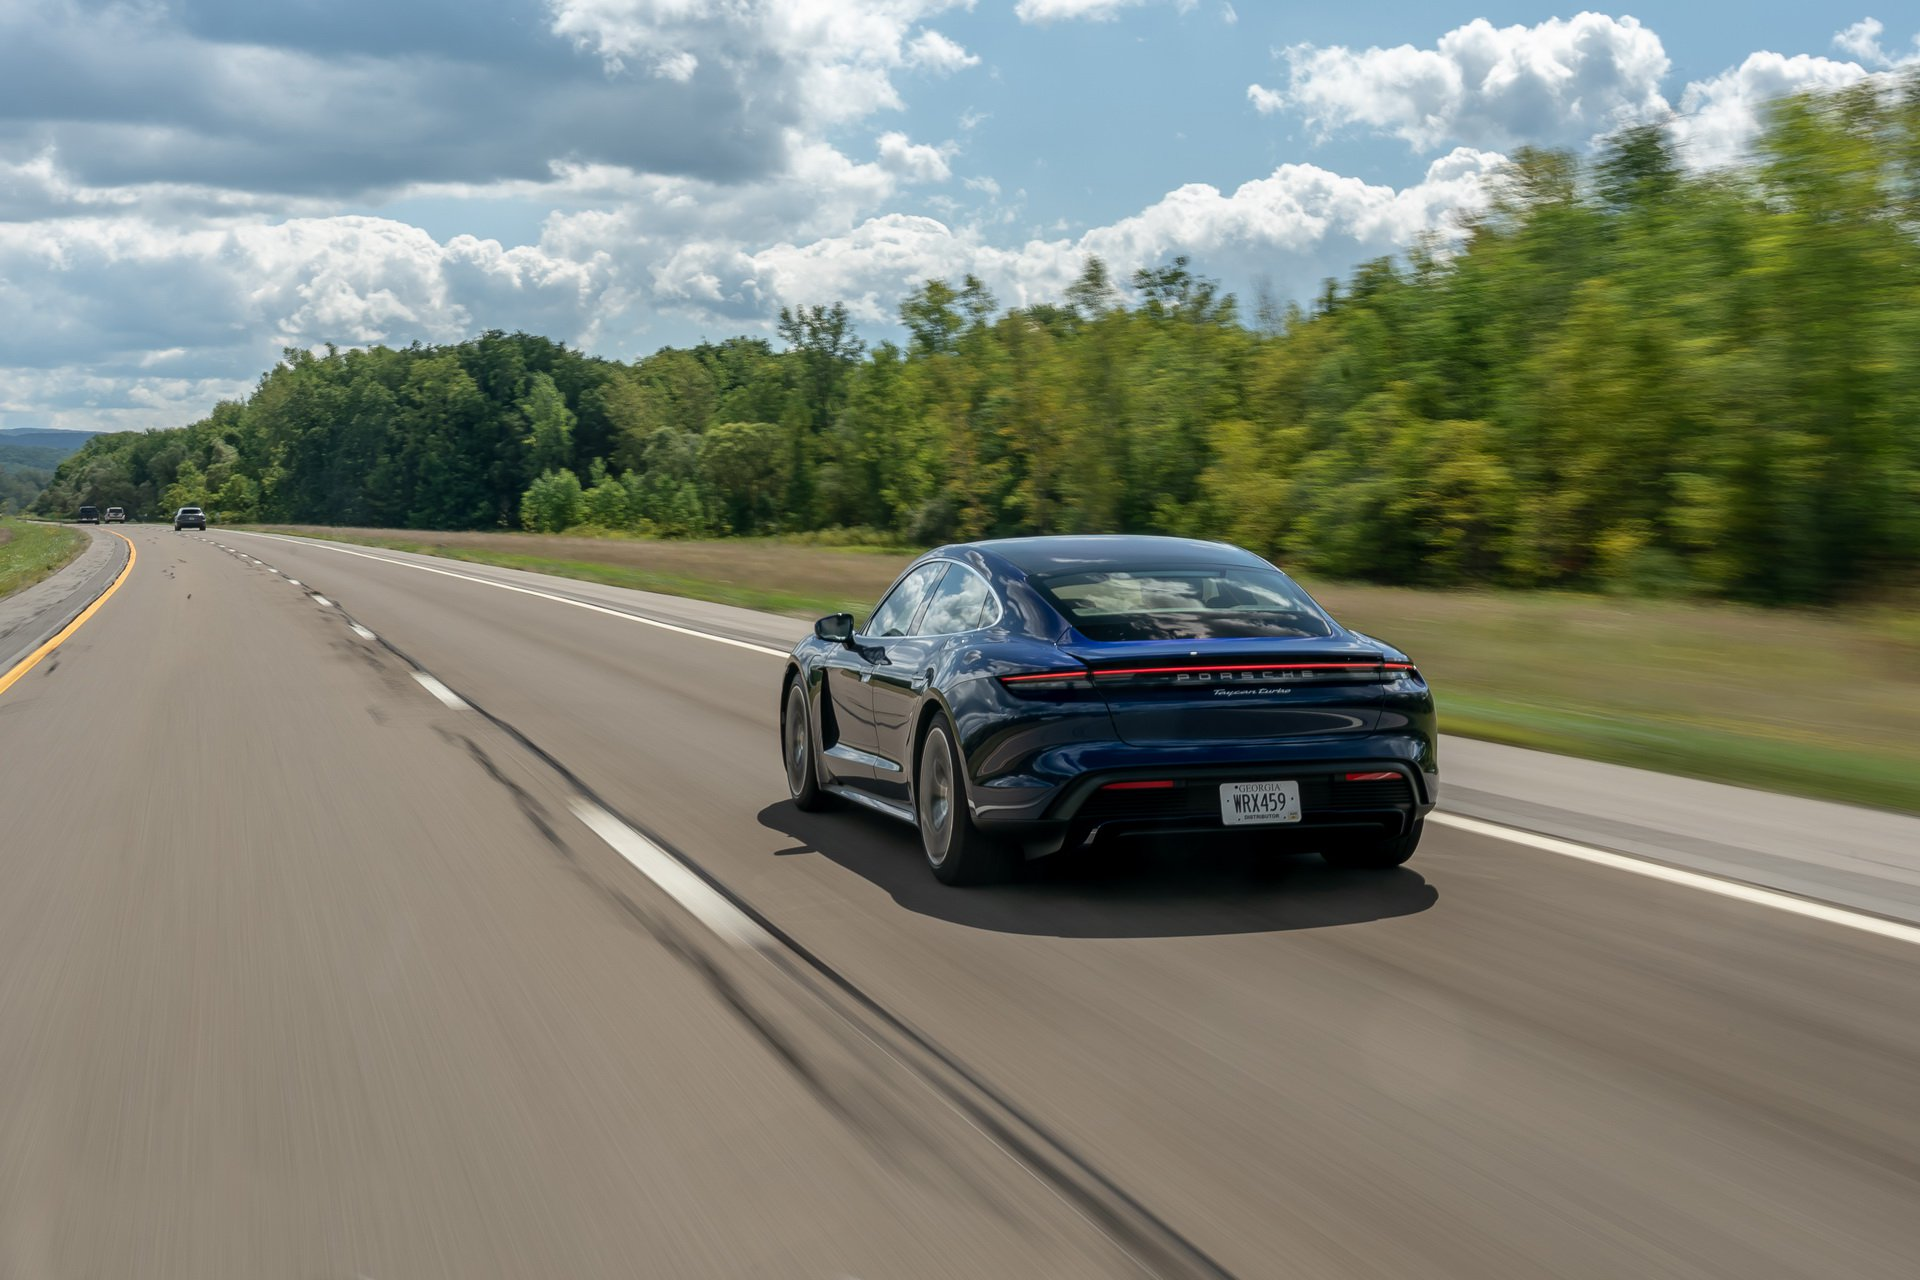 Porsche-Taycan-Niagara-Falls-to-New-York-2